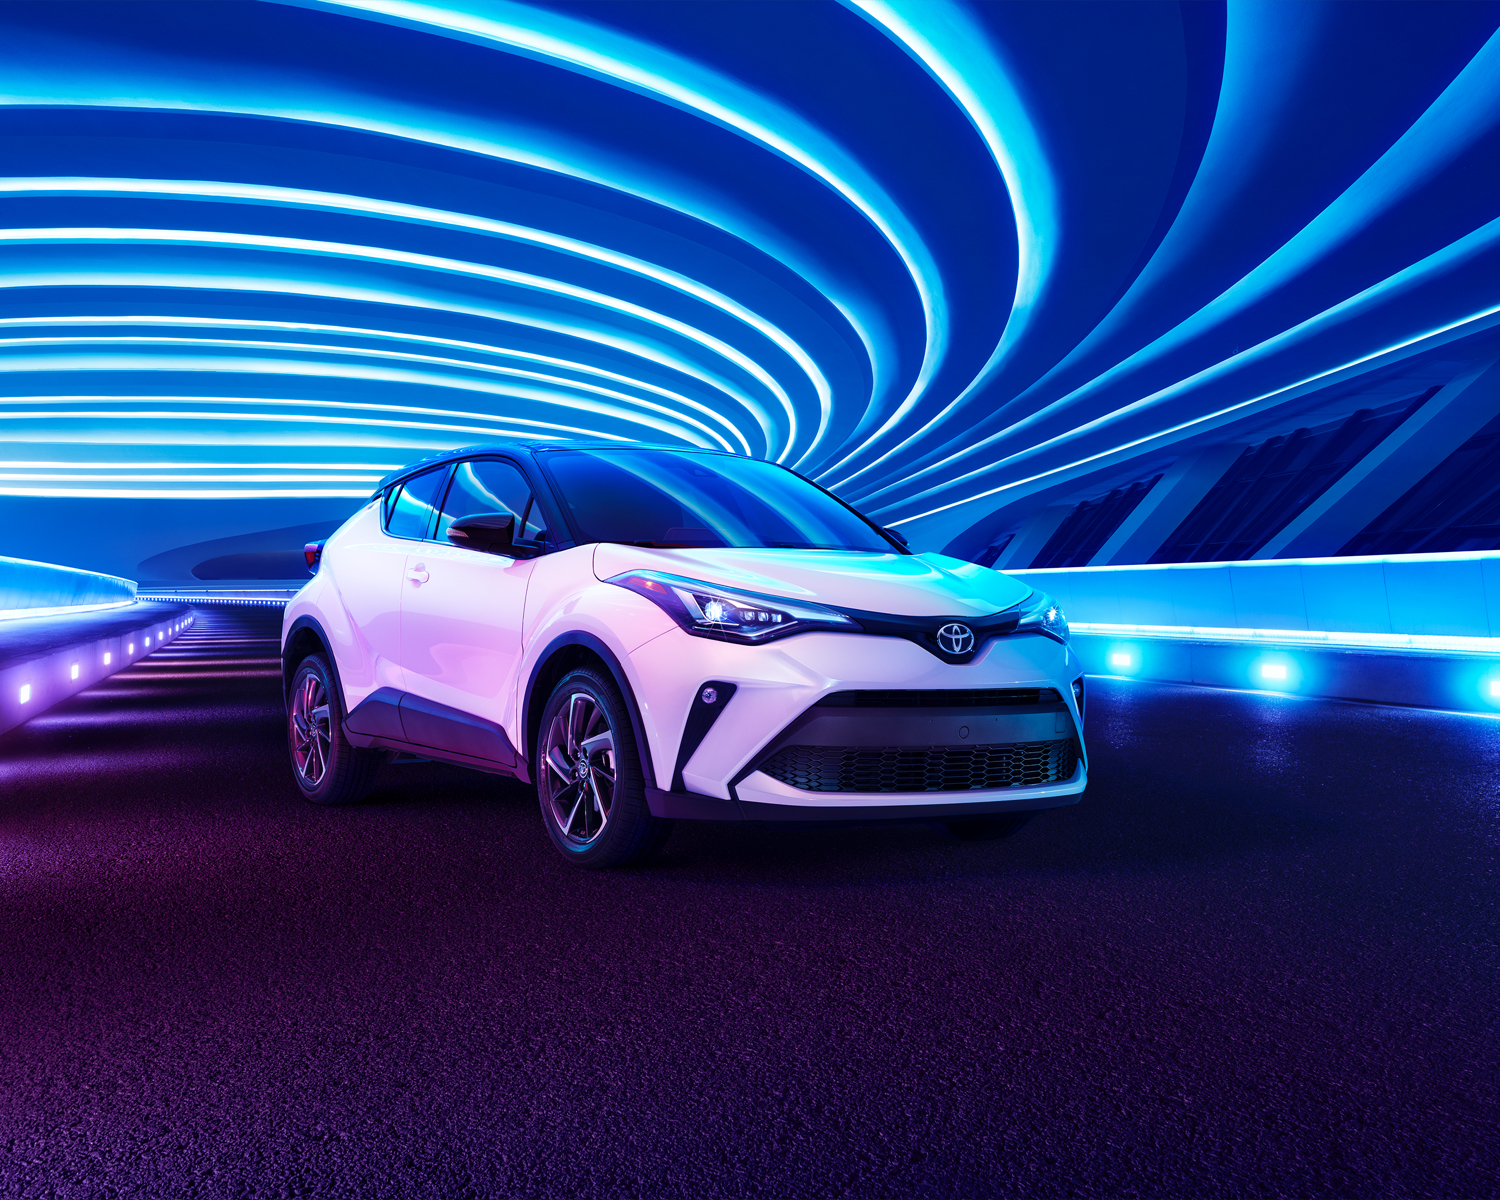 C-HR shown in Blizzard Pearl with Black Roof